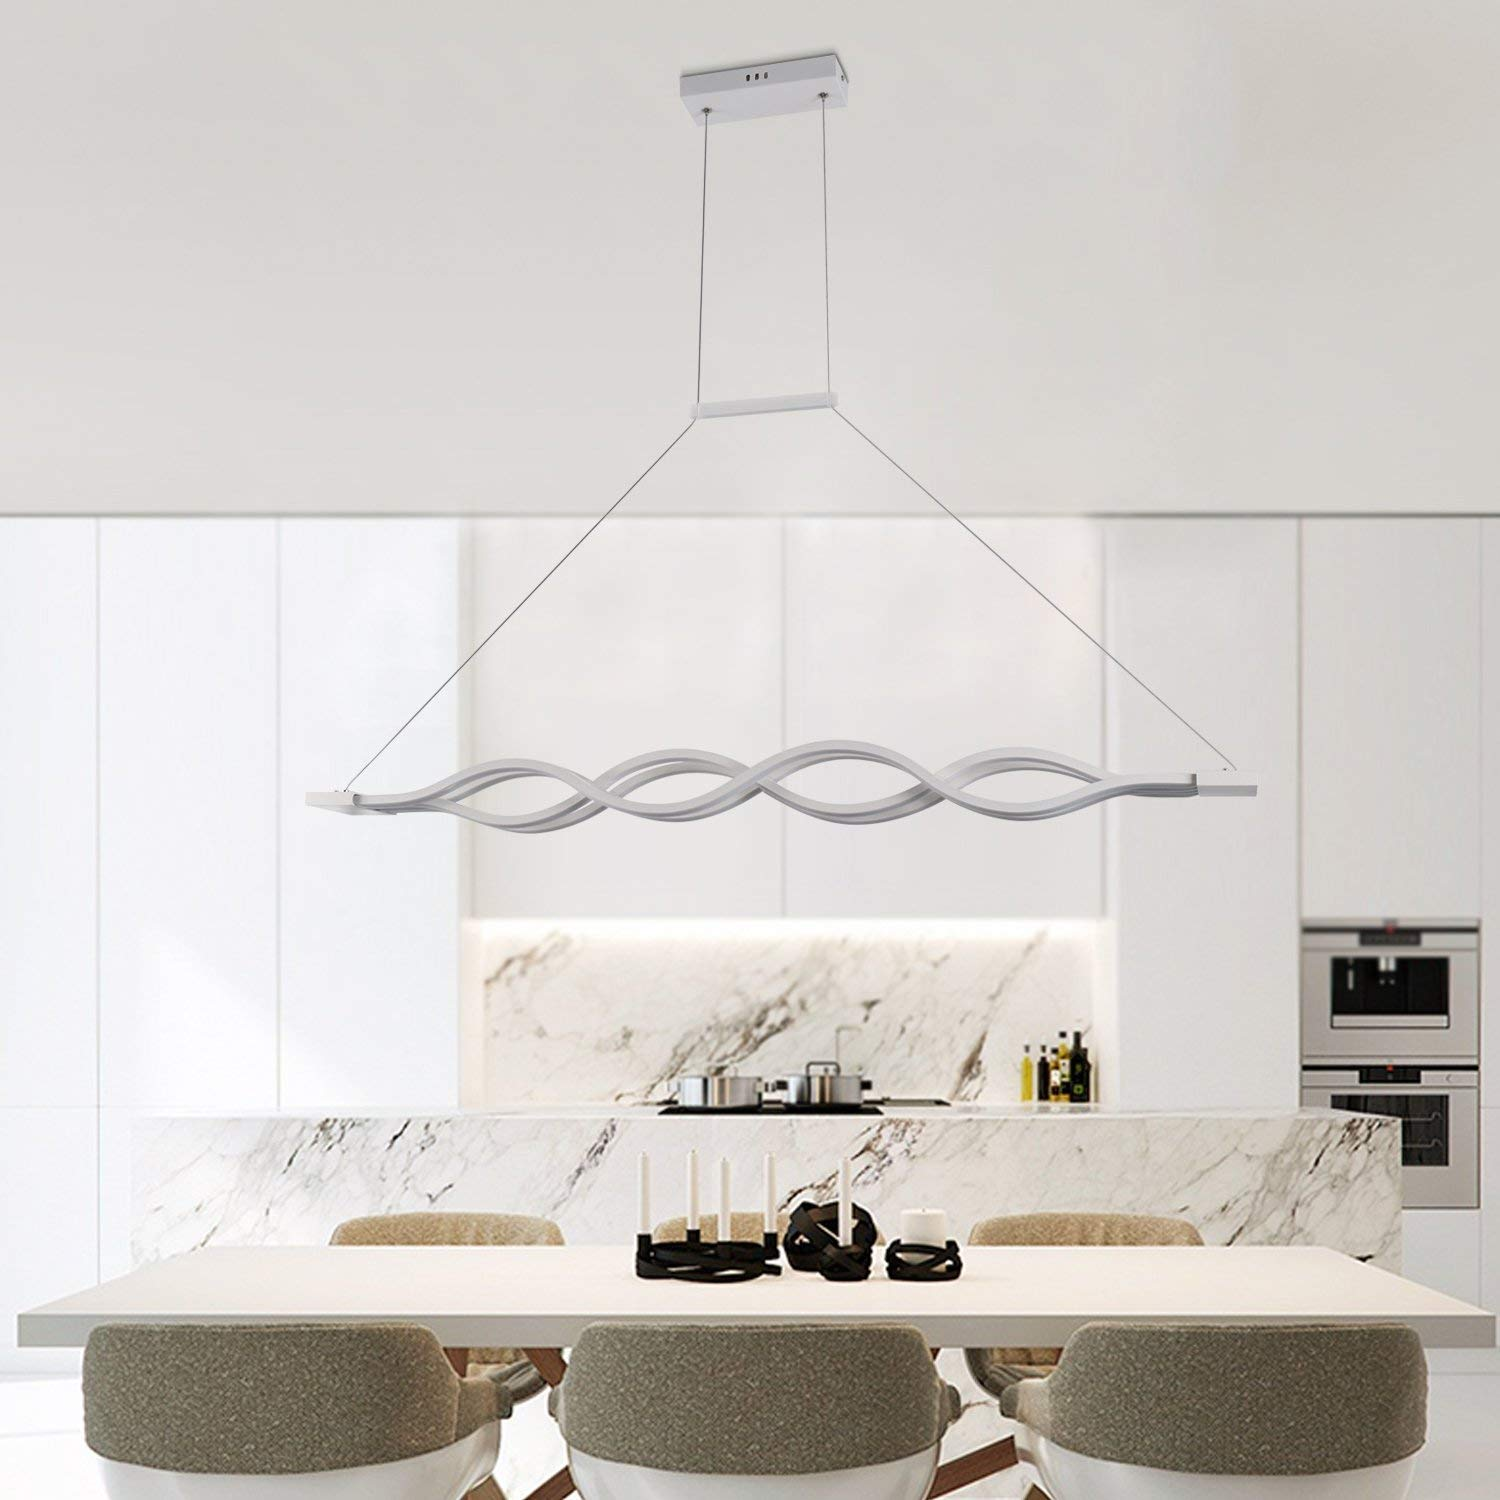 Modern Contemporary Pendant Lights Flush Mount Wave Lighting for Kitchen livving Dining Room Nature de Hanging LED lamp FixtureModern Contemporary Pendant Lights Flush Mount Wave Lighting for Kitchen livving Dining Room Nature de Hanging LED lamp Fixture